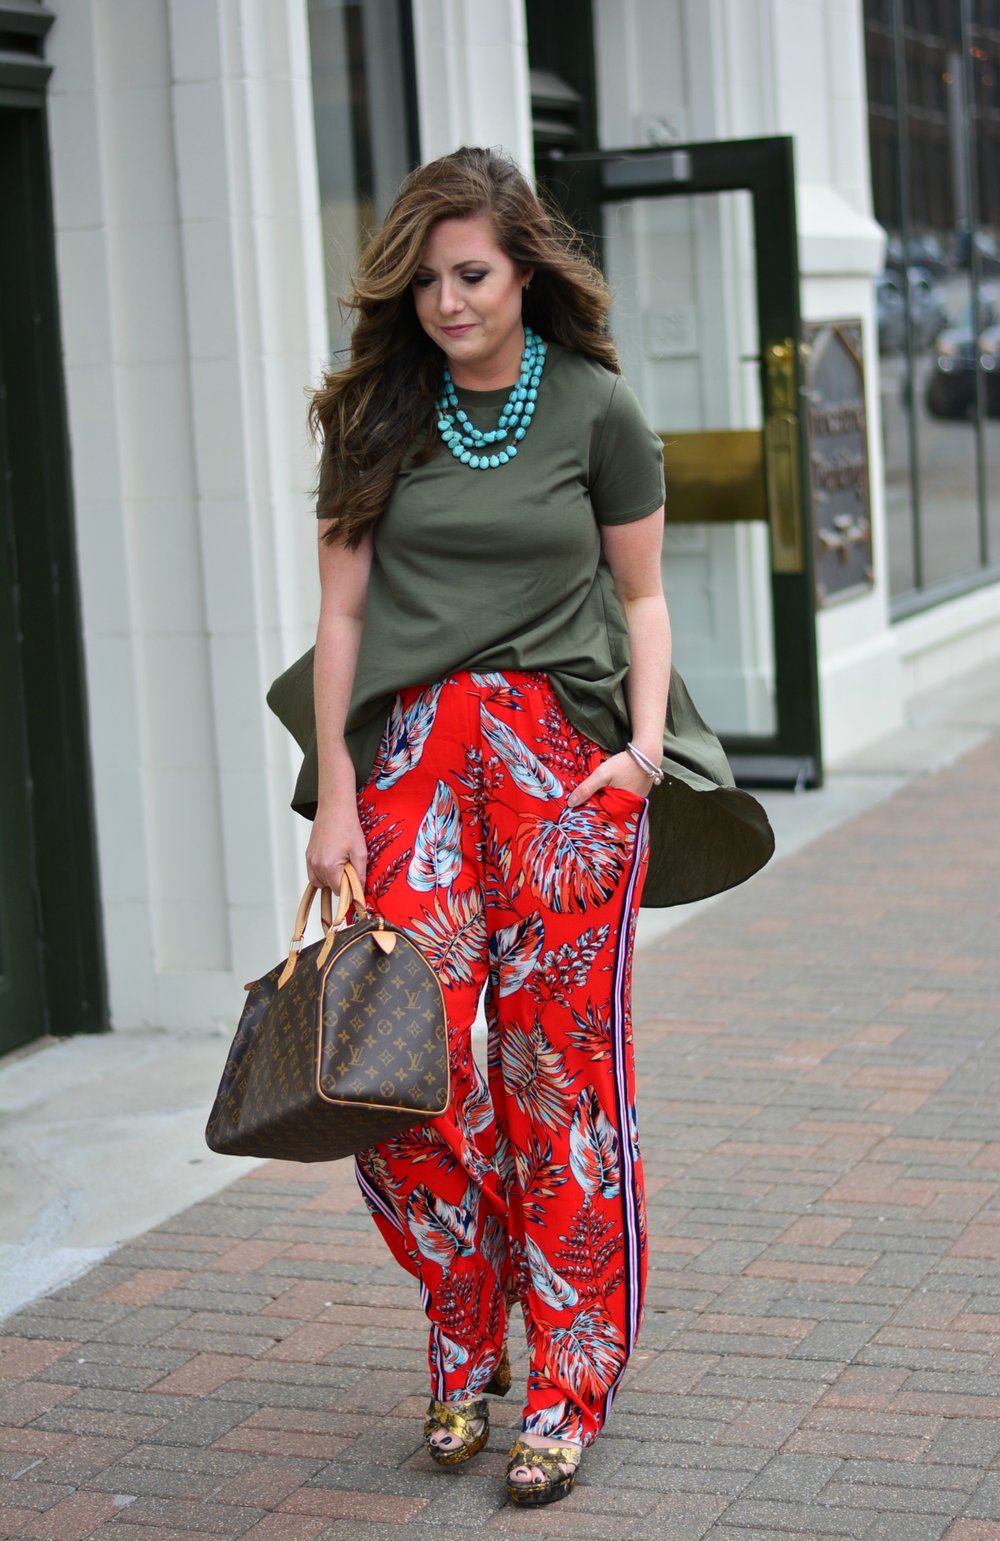 Printed pants for spring